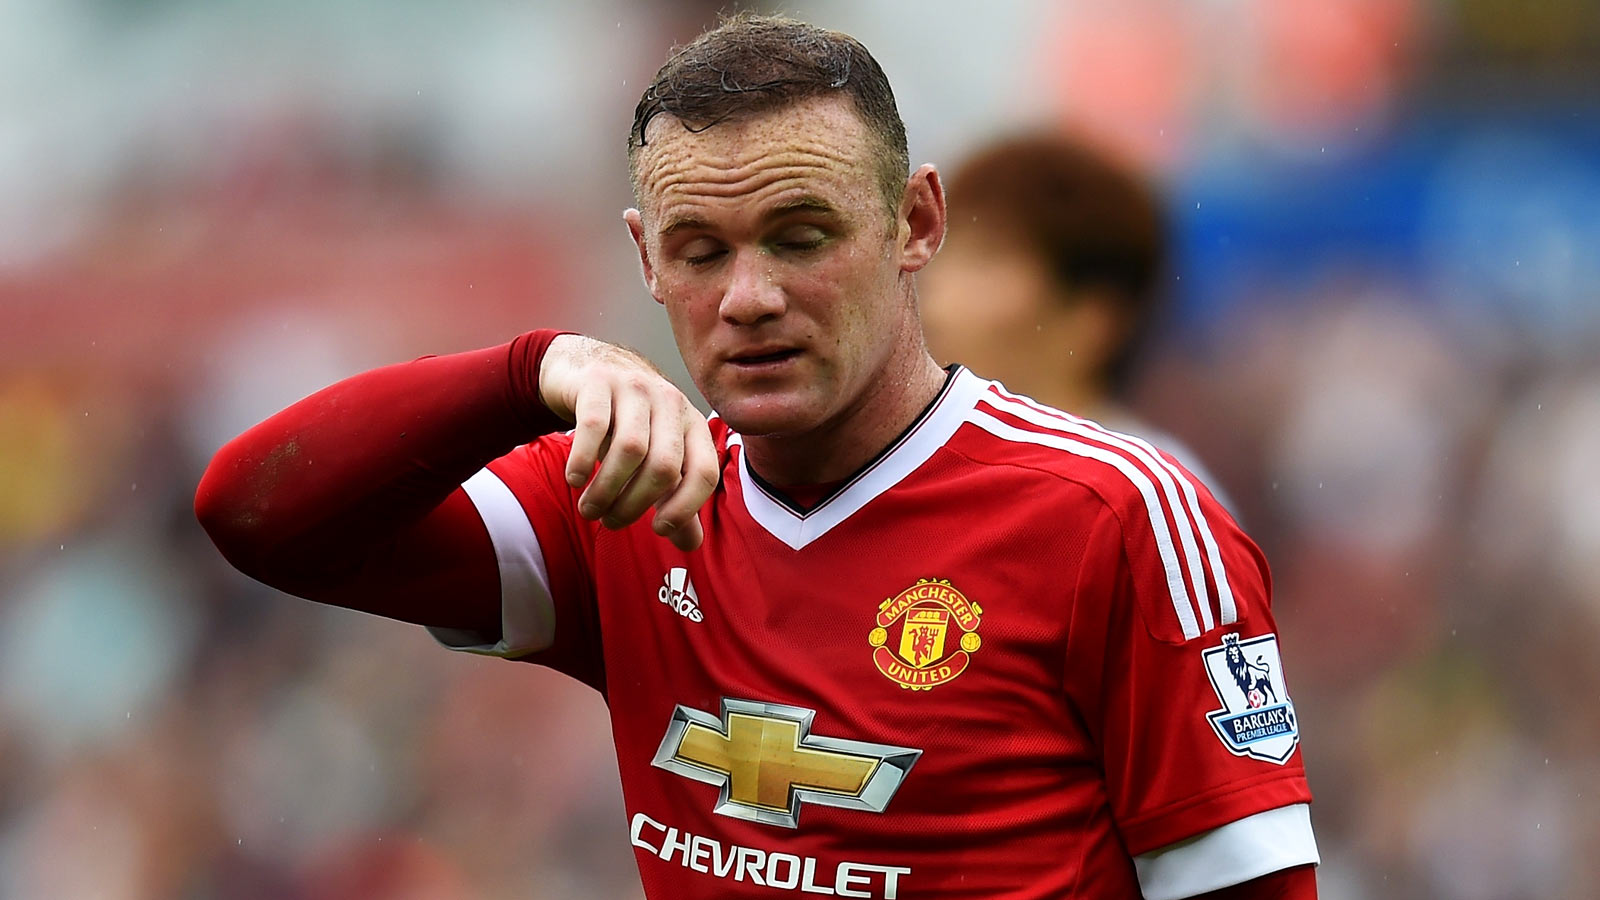 Man United skipper Rooney ruled out of UCL match against PSV